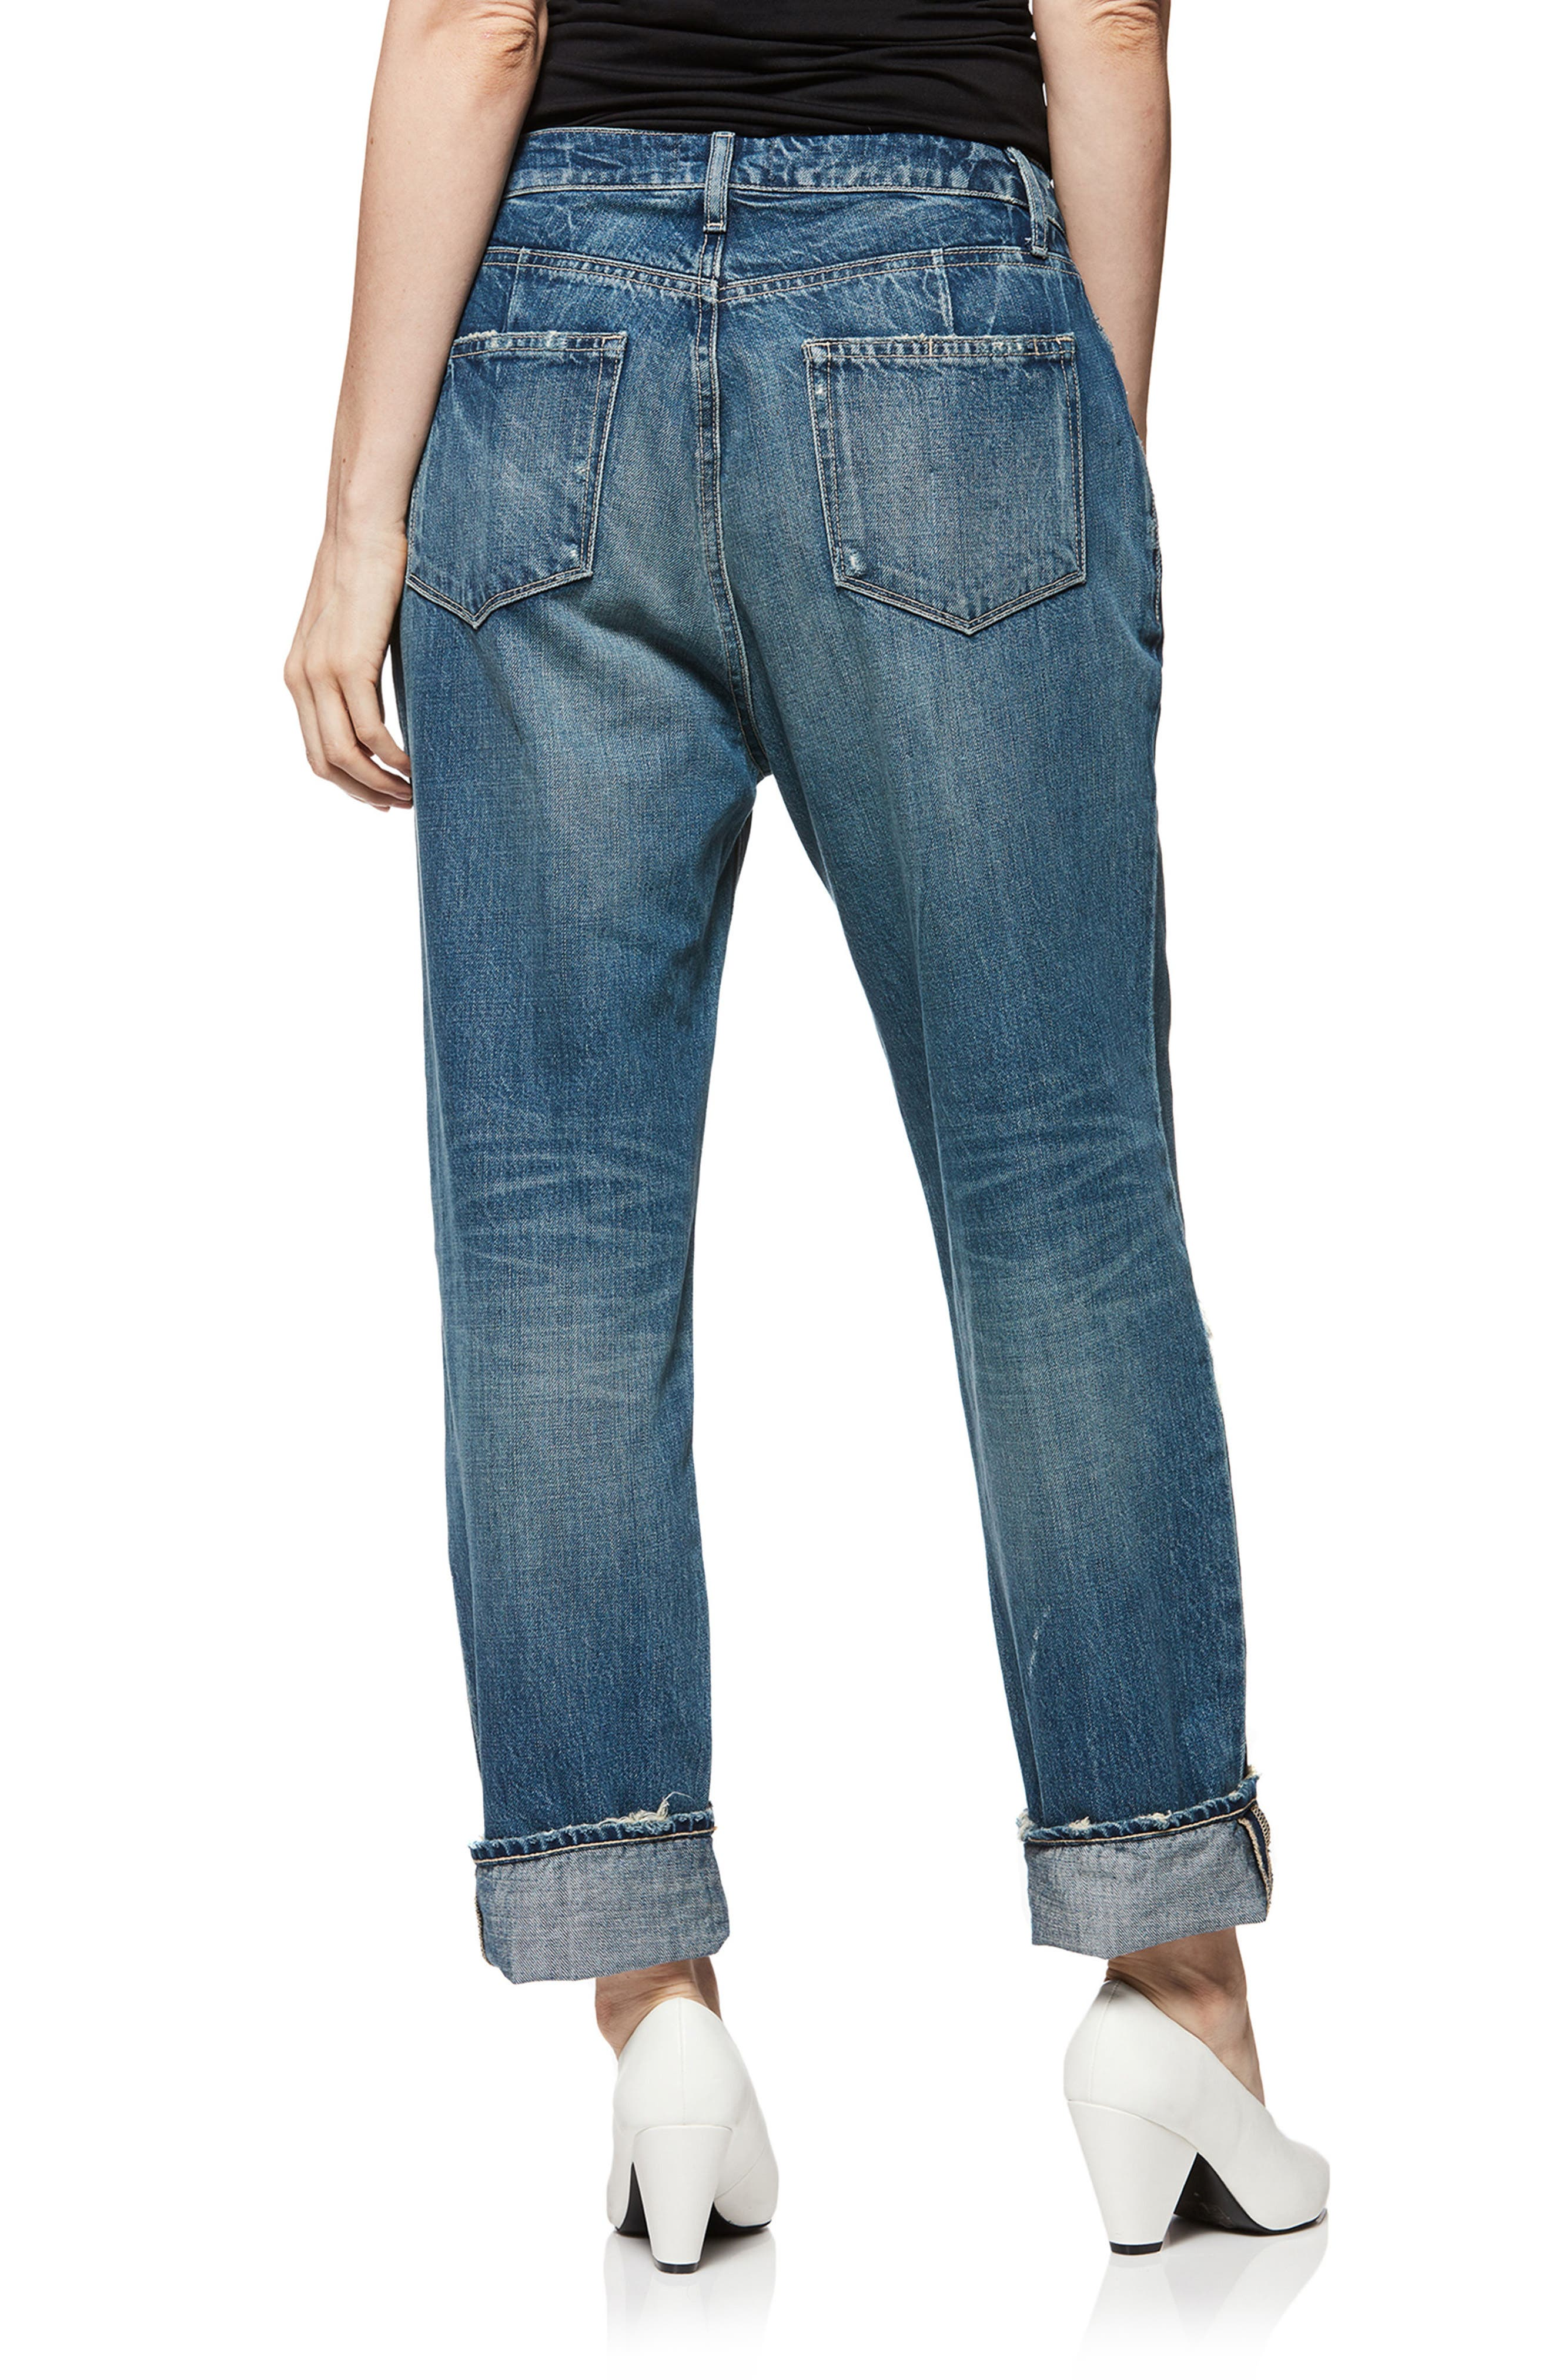 Mikey Mike Ripped Boyfriend Jeans,                             Alternate thumbnail 2, color,                             400